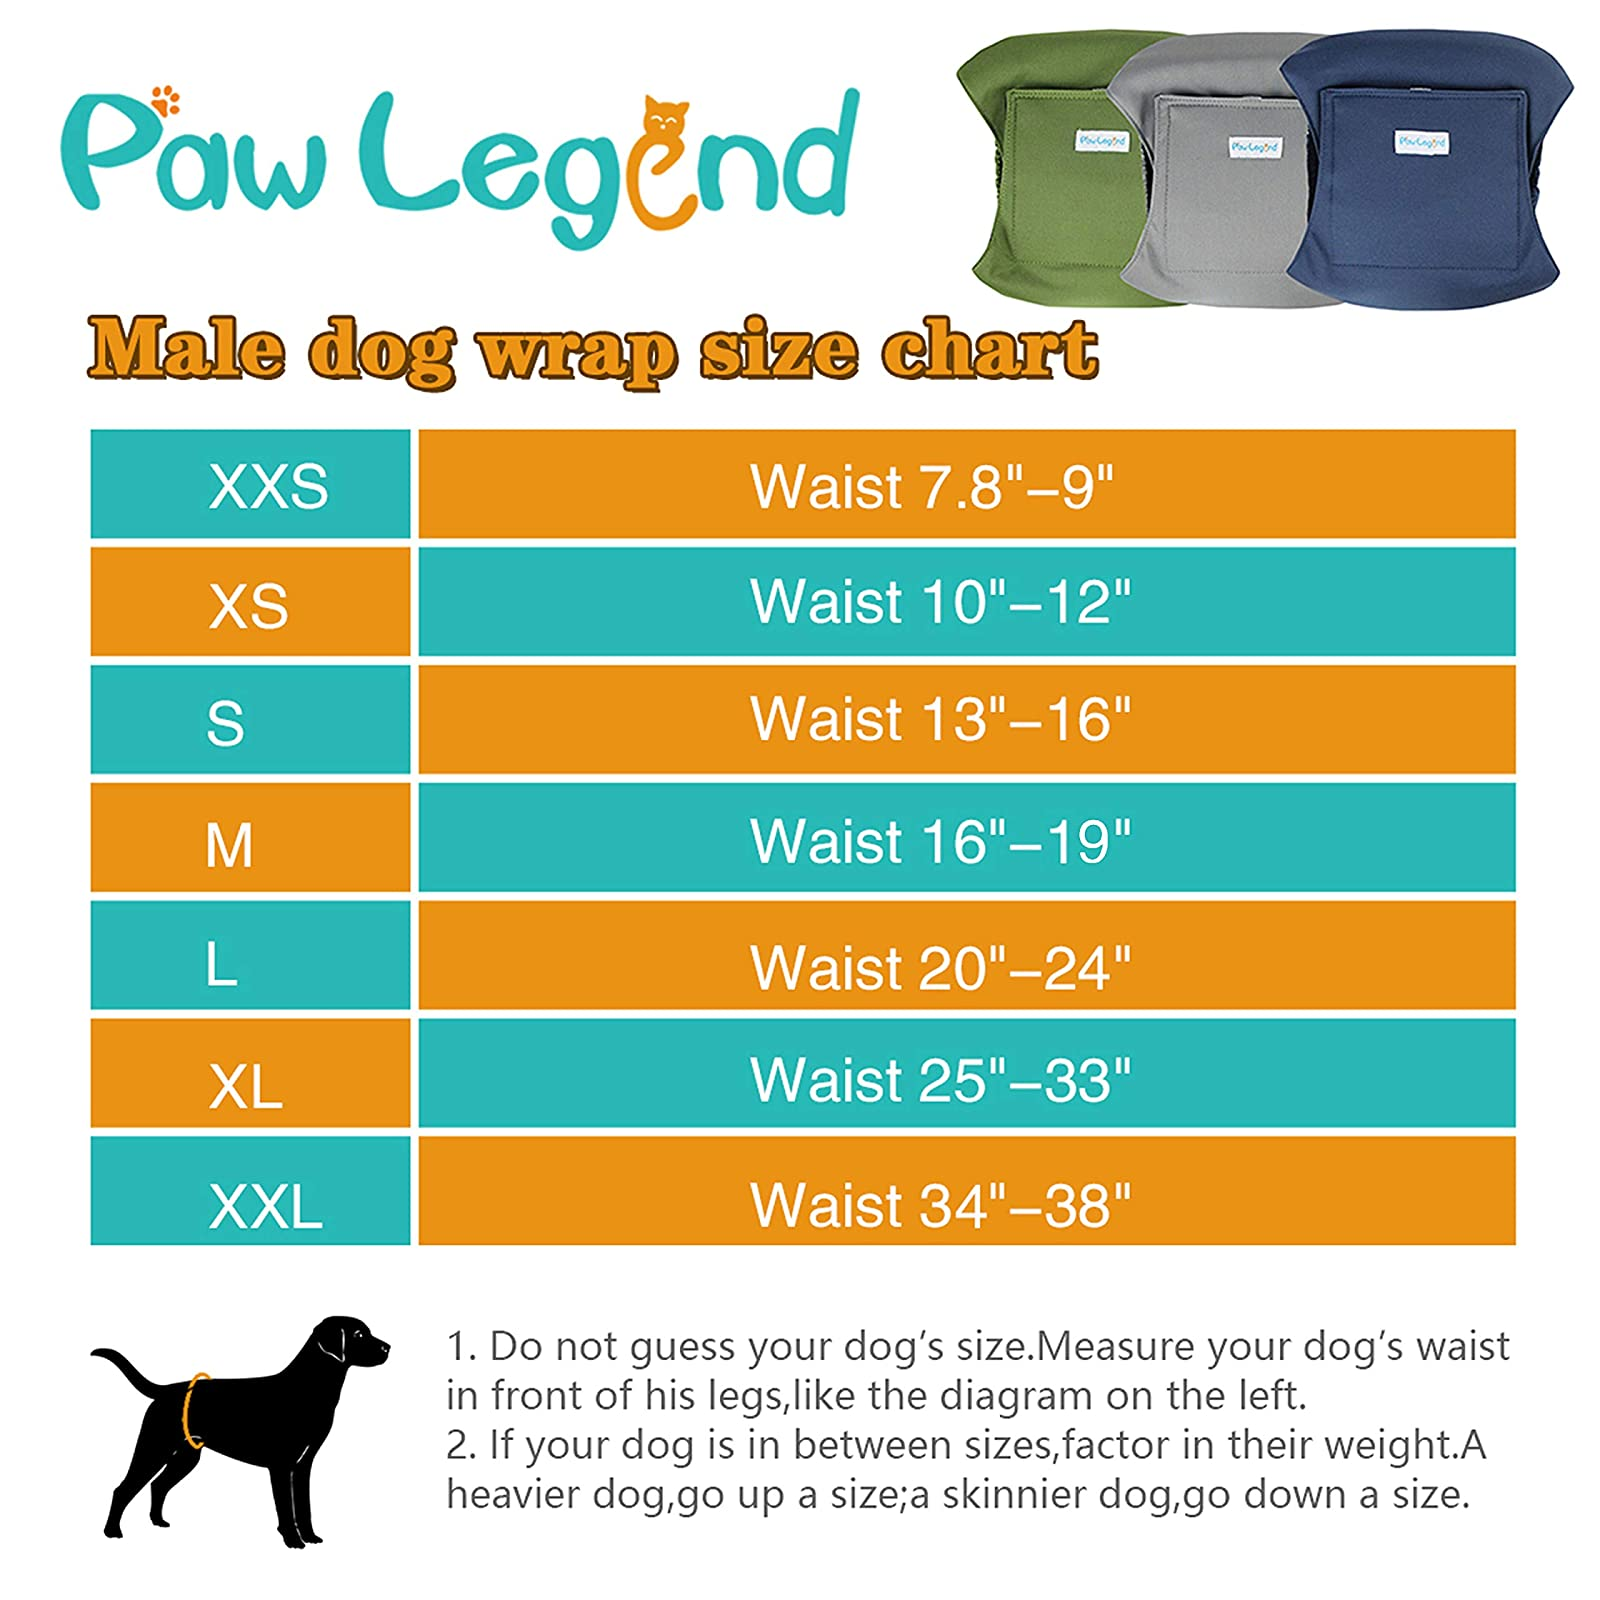 Paw Legend Washable Dog Belly Wrap DiapersMale - 3